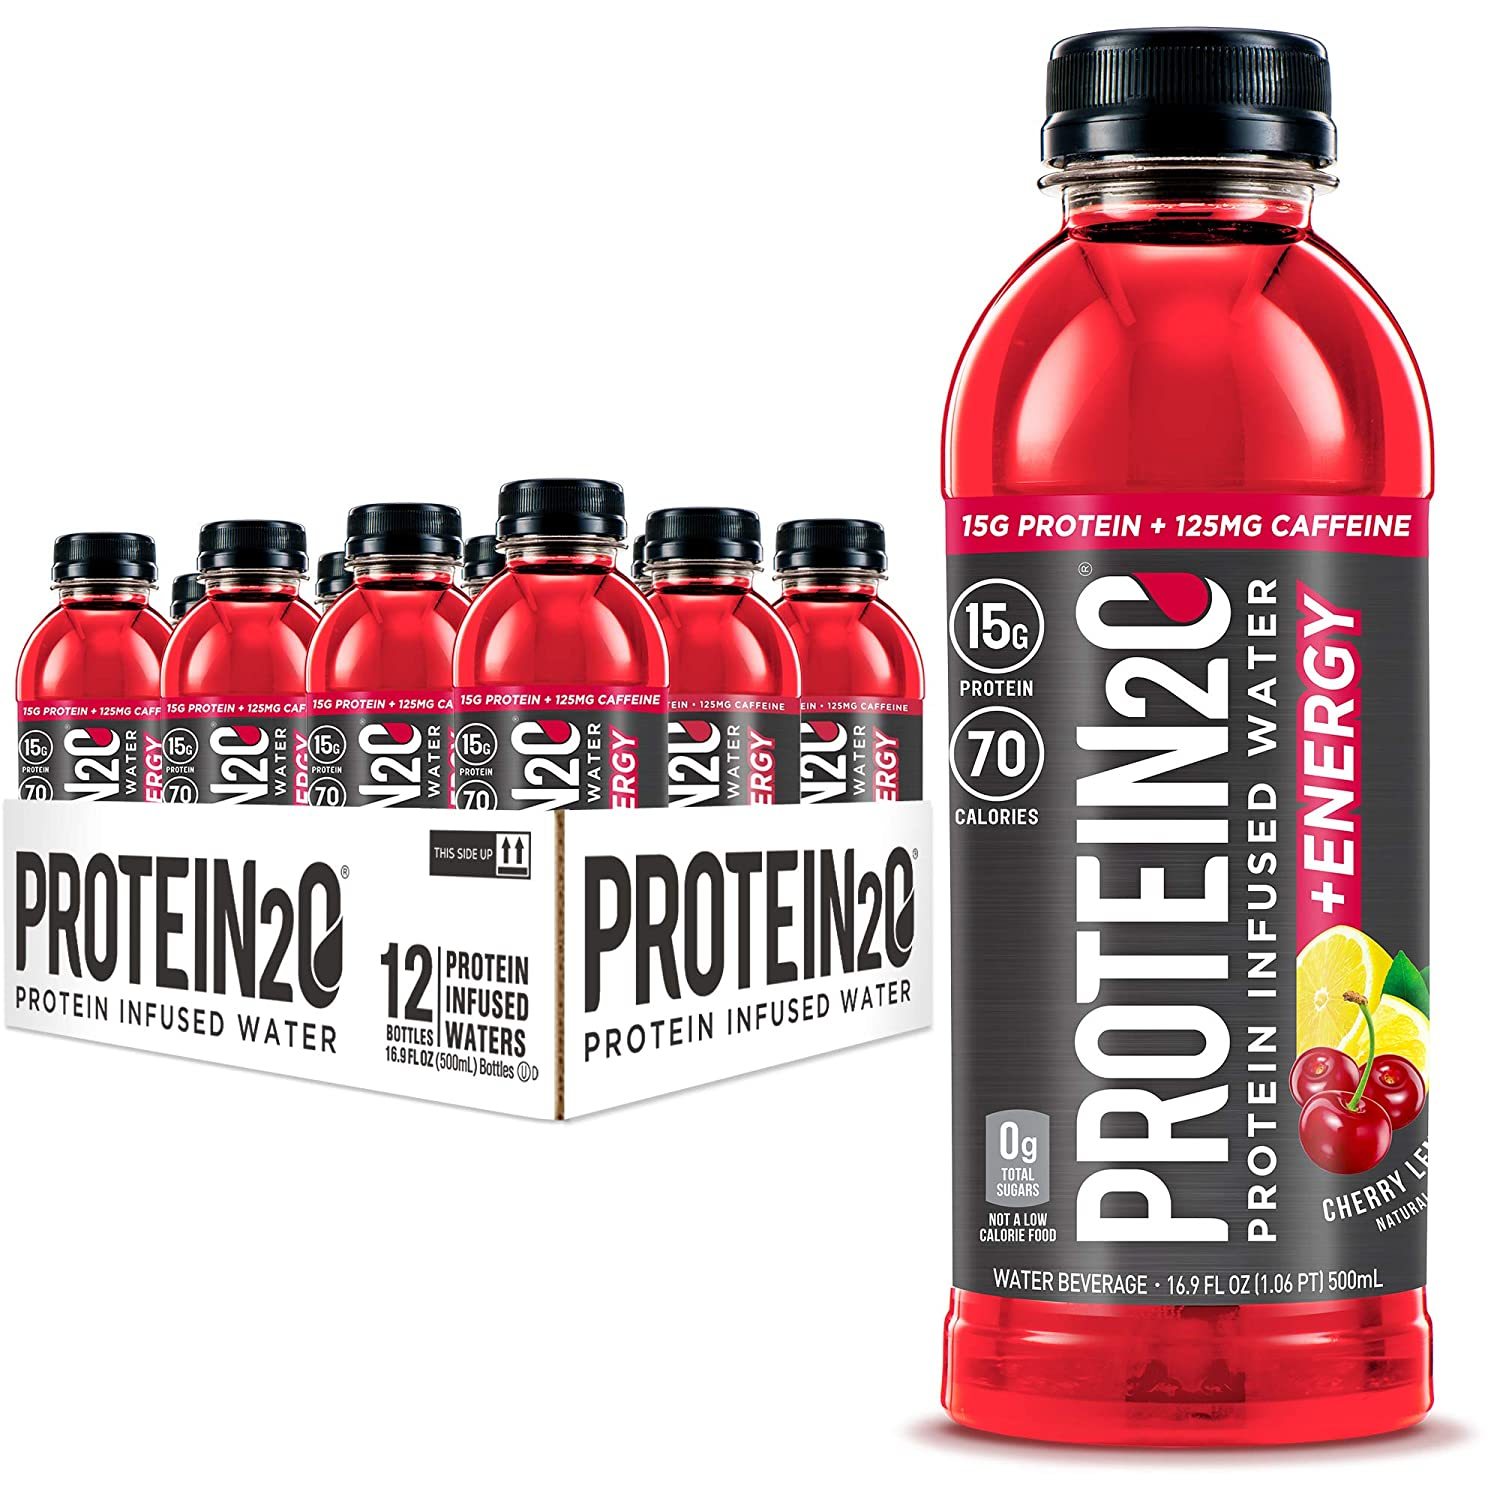 Max 73% OFF Protein2o 15g Whey Mail order Protein Infused Energy Plus Cherry Water Lem